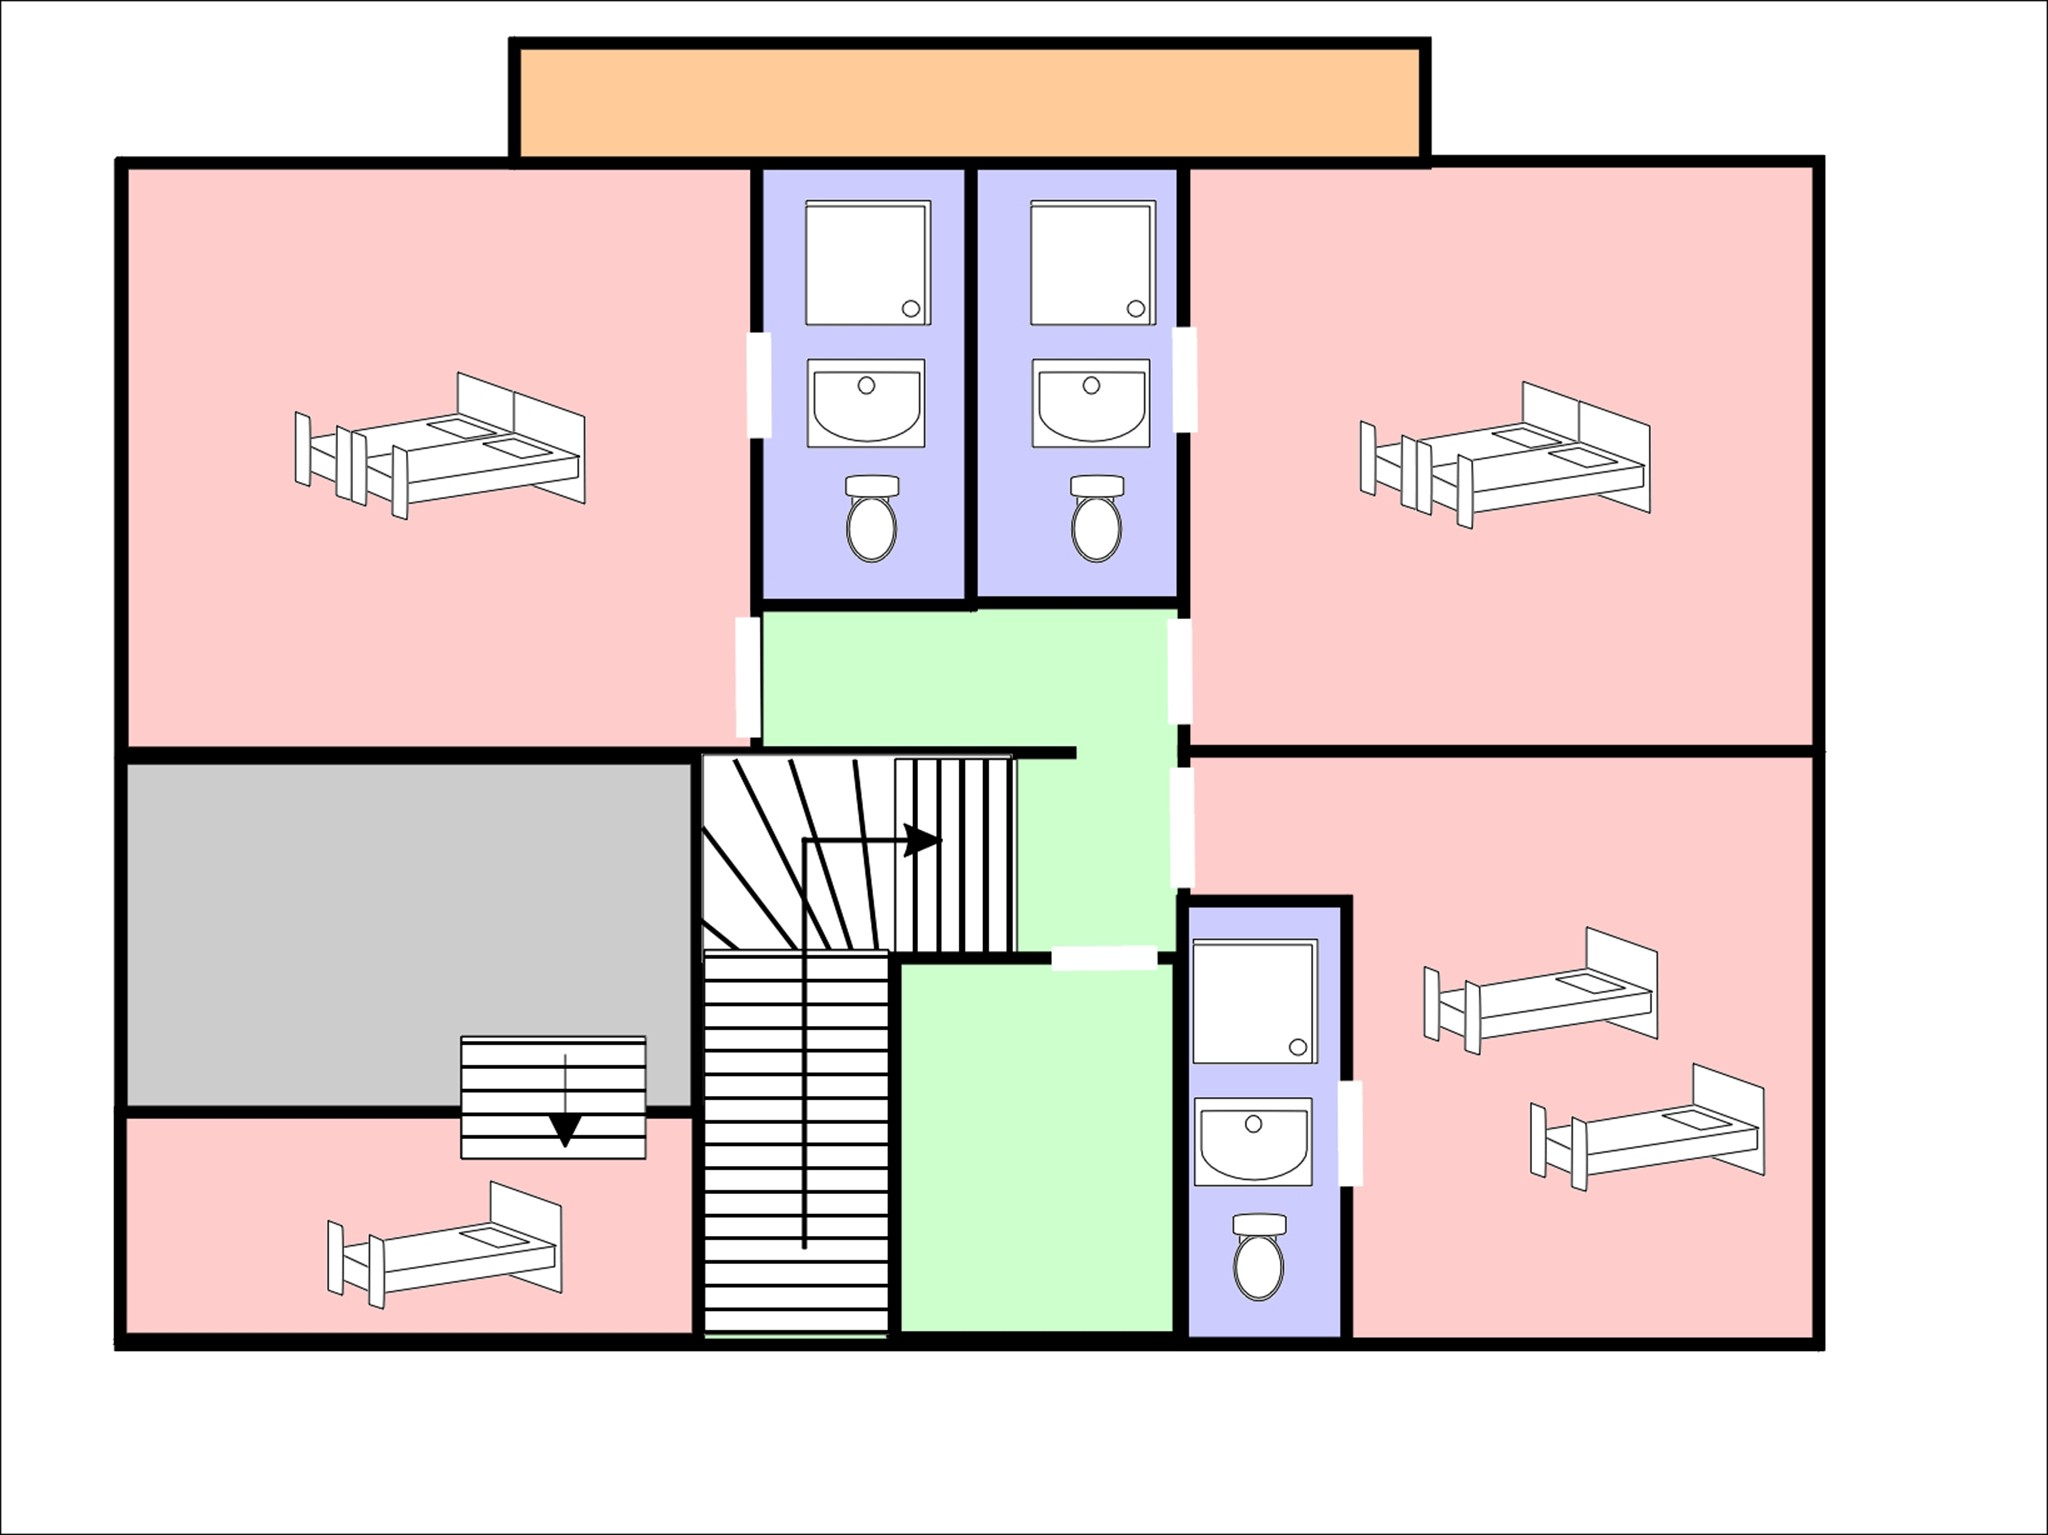 Chalet Michelle - floor plan - level 2